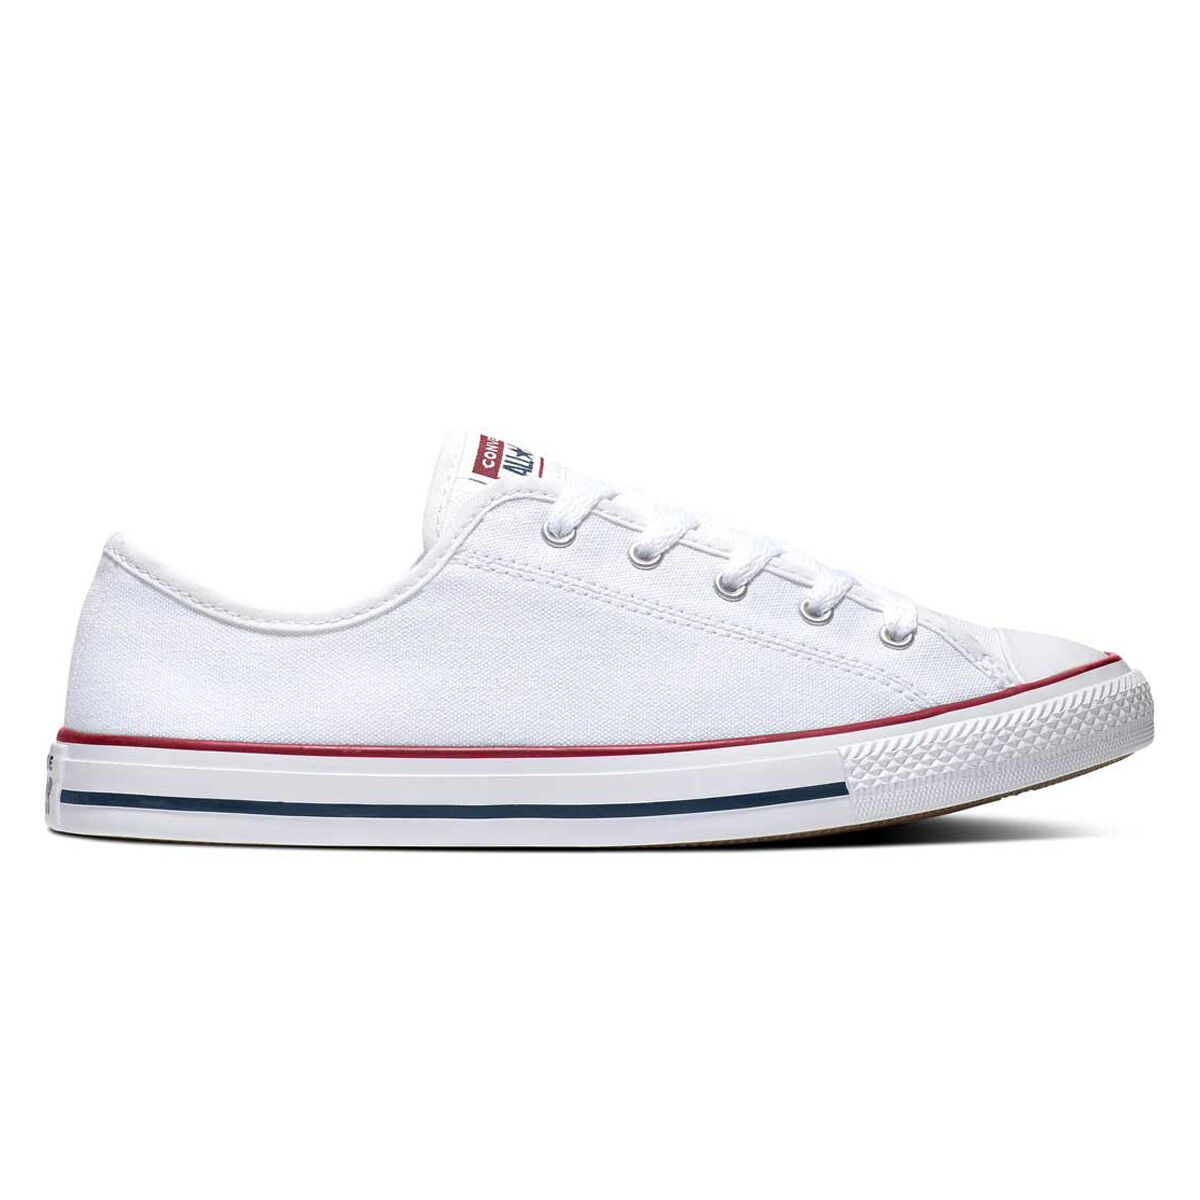 Converse Chuck Taylor Dainty Low Womens